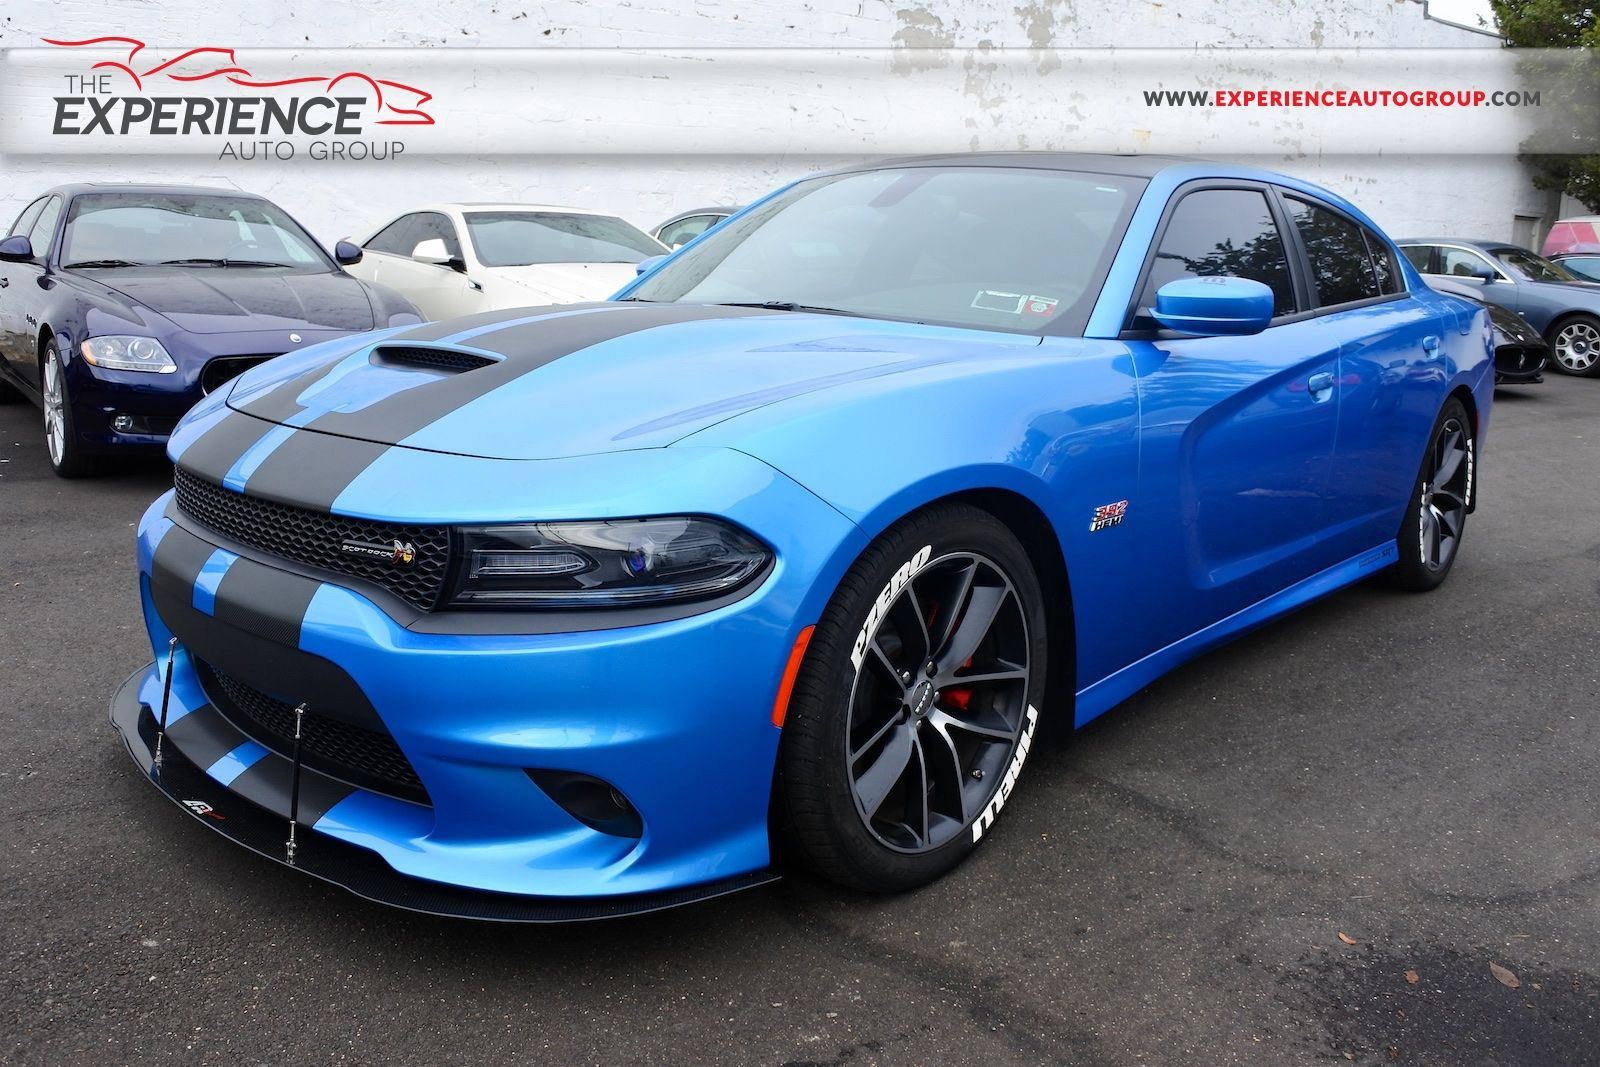 2016 Dodge Charger R T Scat Pack Sedan For Sale In Great Neck New York Dodge Charger Dodge Charger Hellcat Dodge